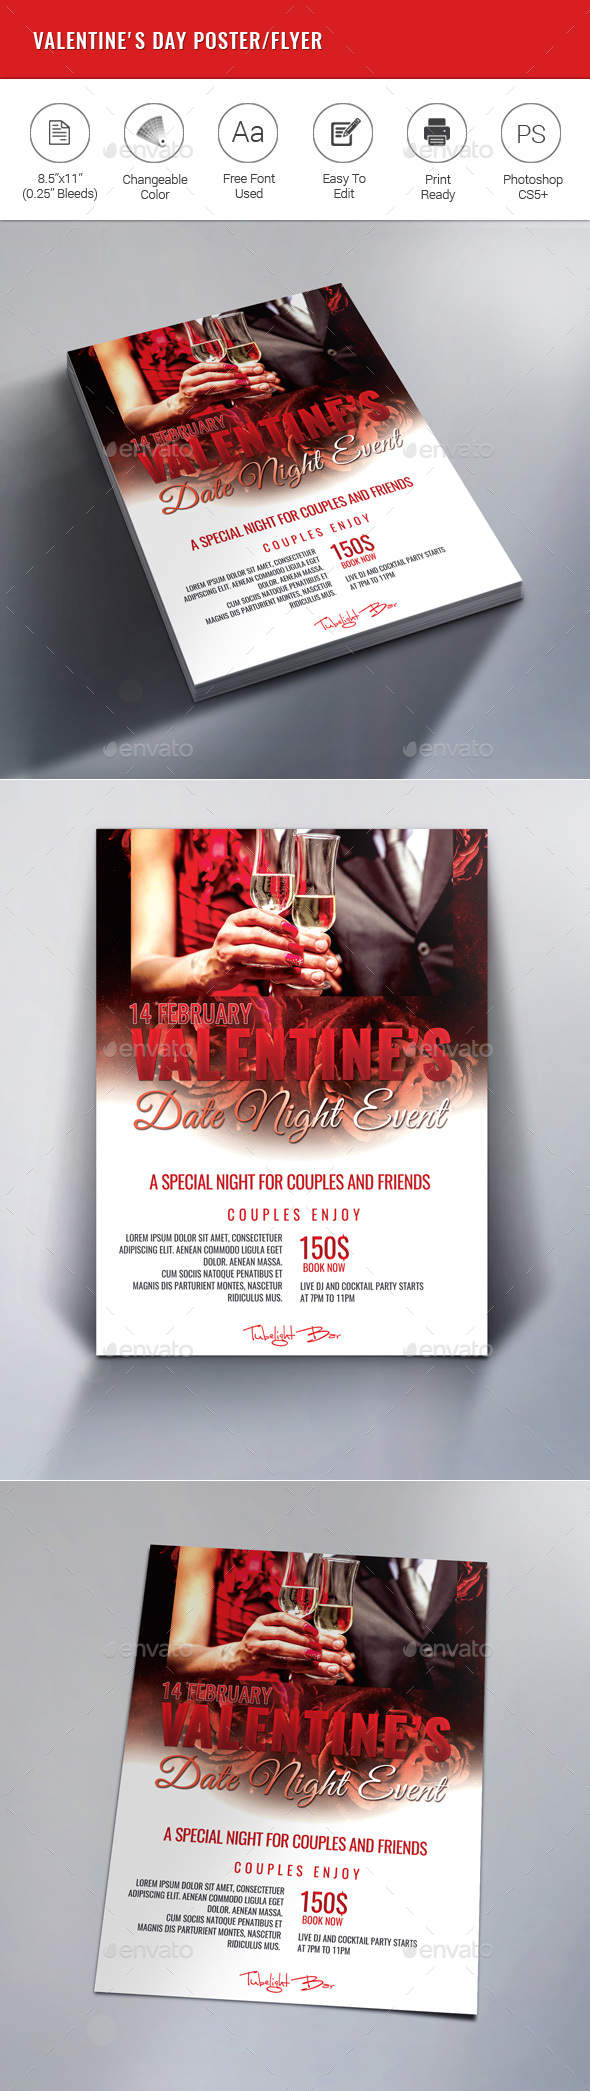 Valentine's Day Party Poster/Flyer - Clubs & Parties Events